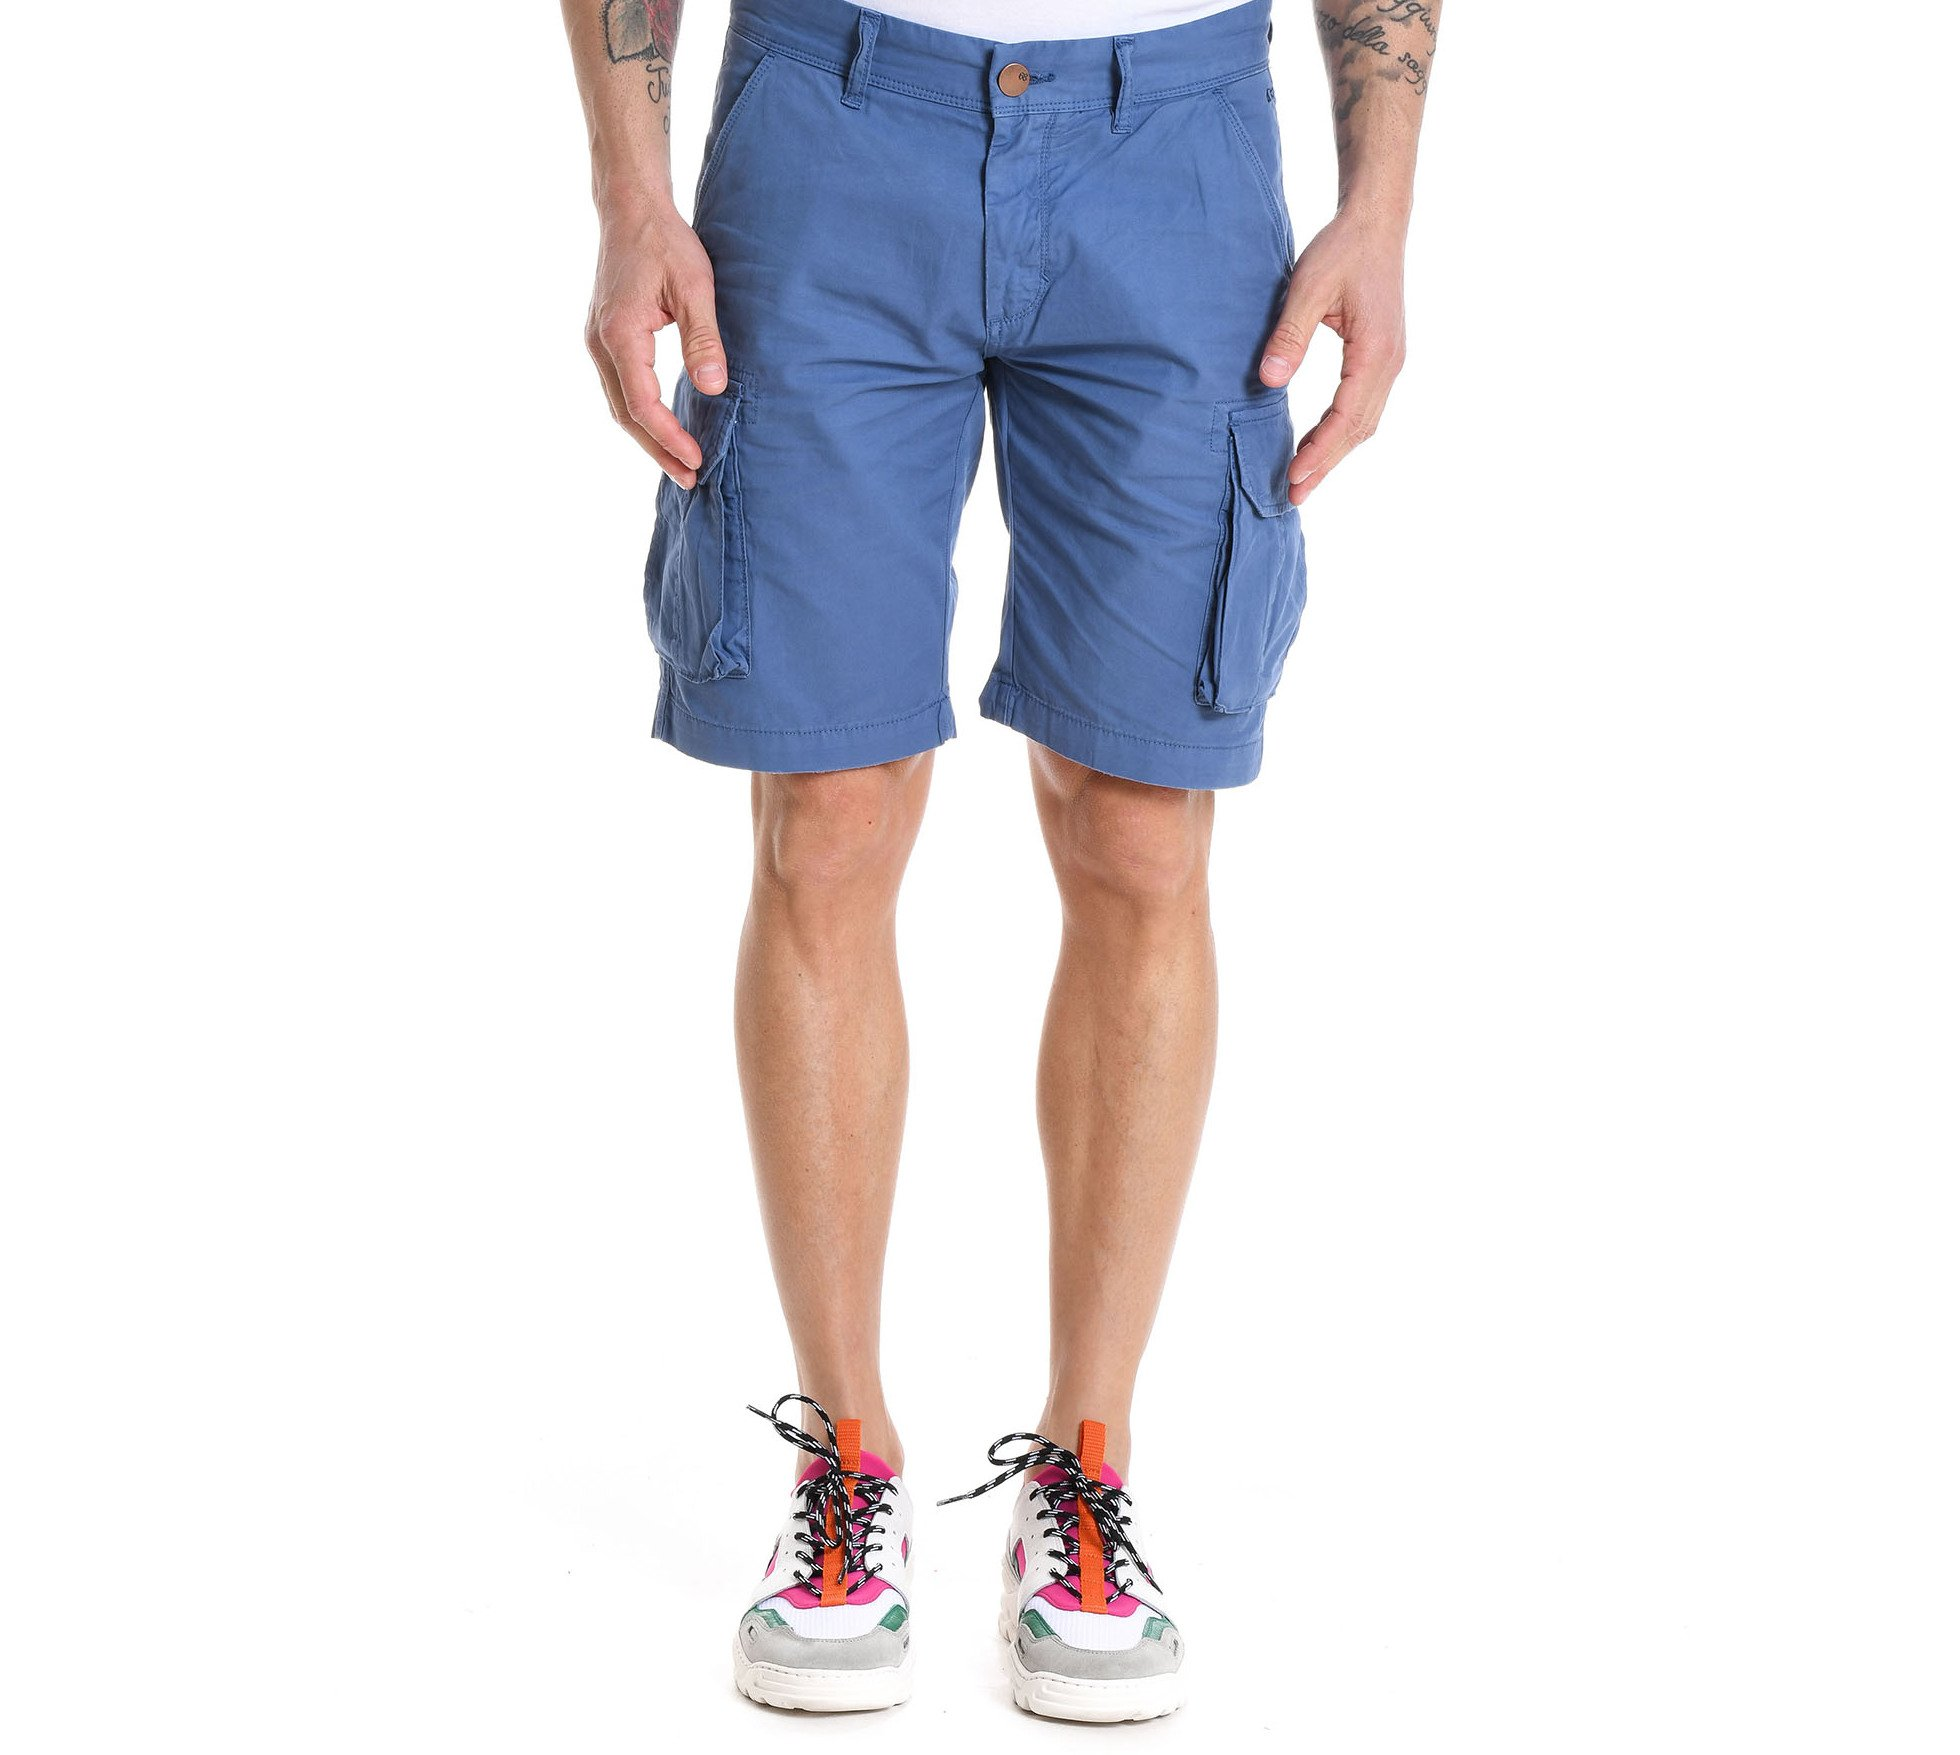 SUN 68 Men's B1810681 Blue Cotton Shorts